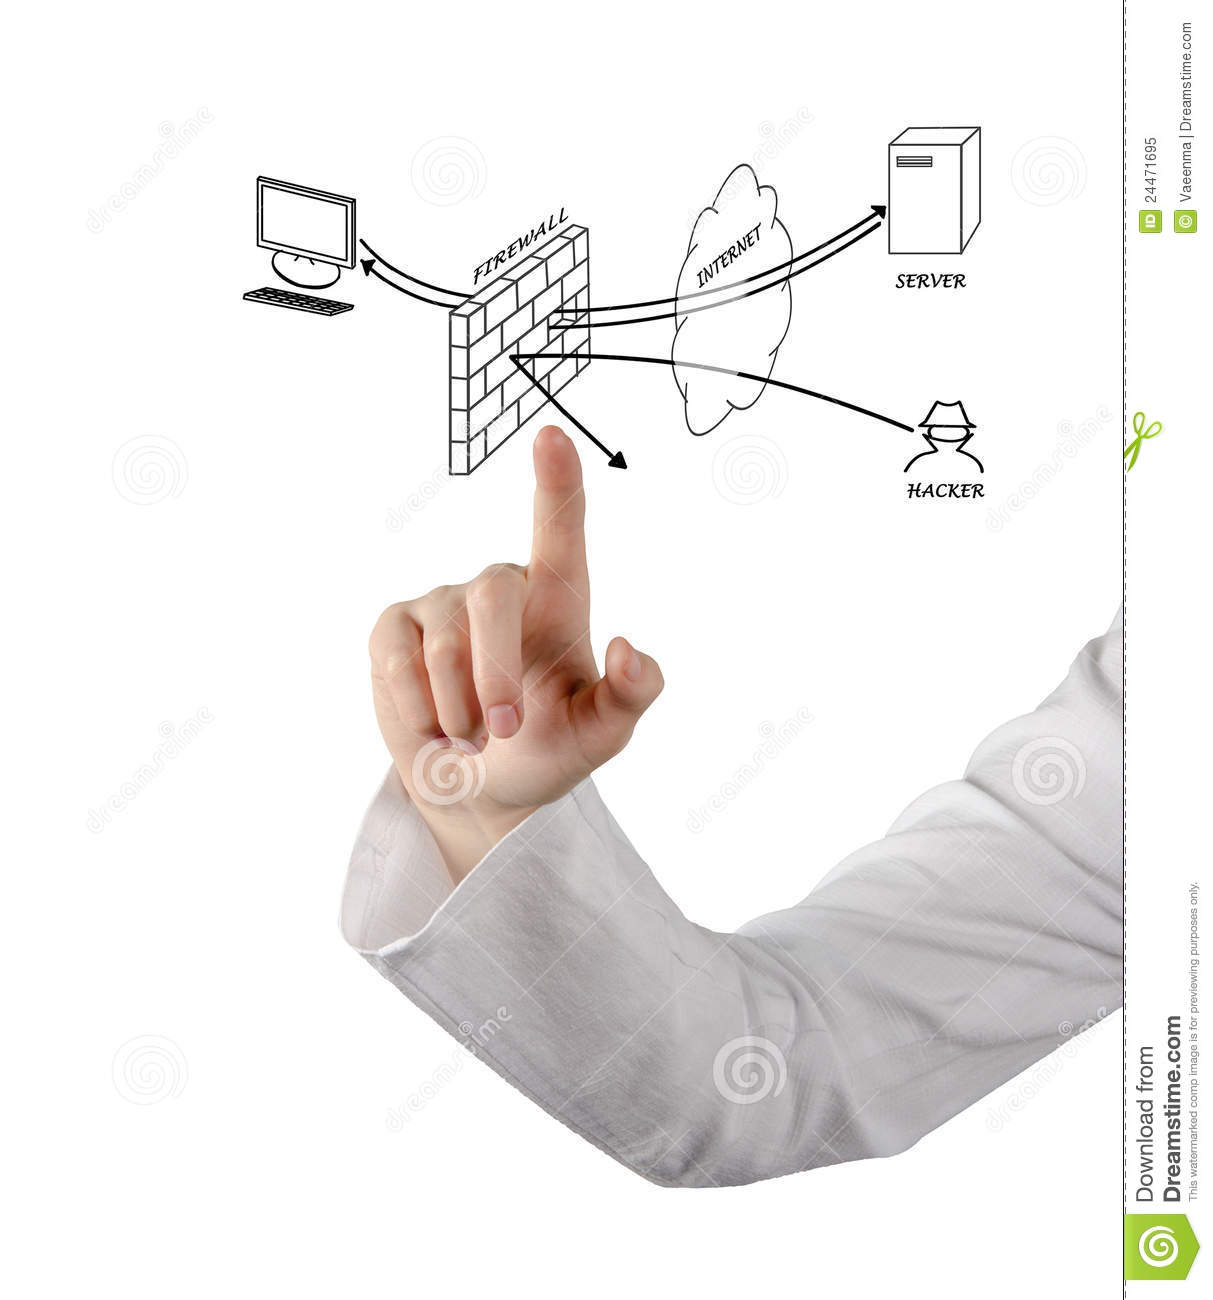 computer ports diagram trailer wire 7 of firewall stock image presentation